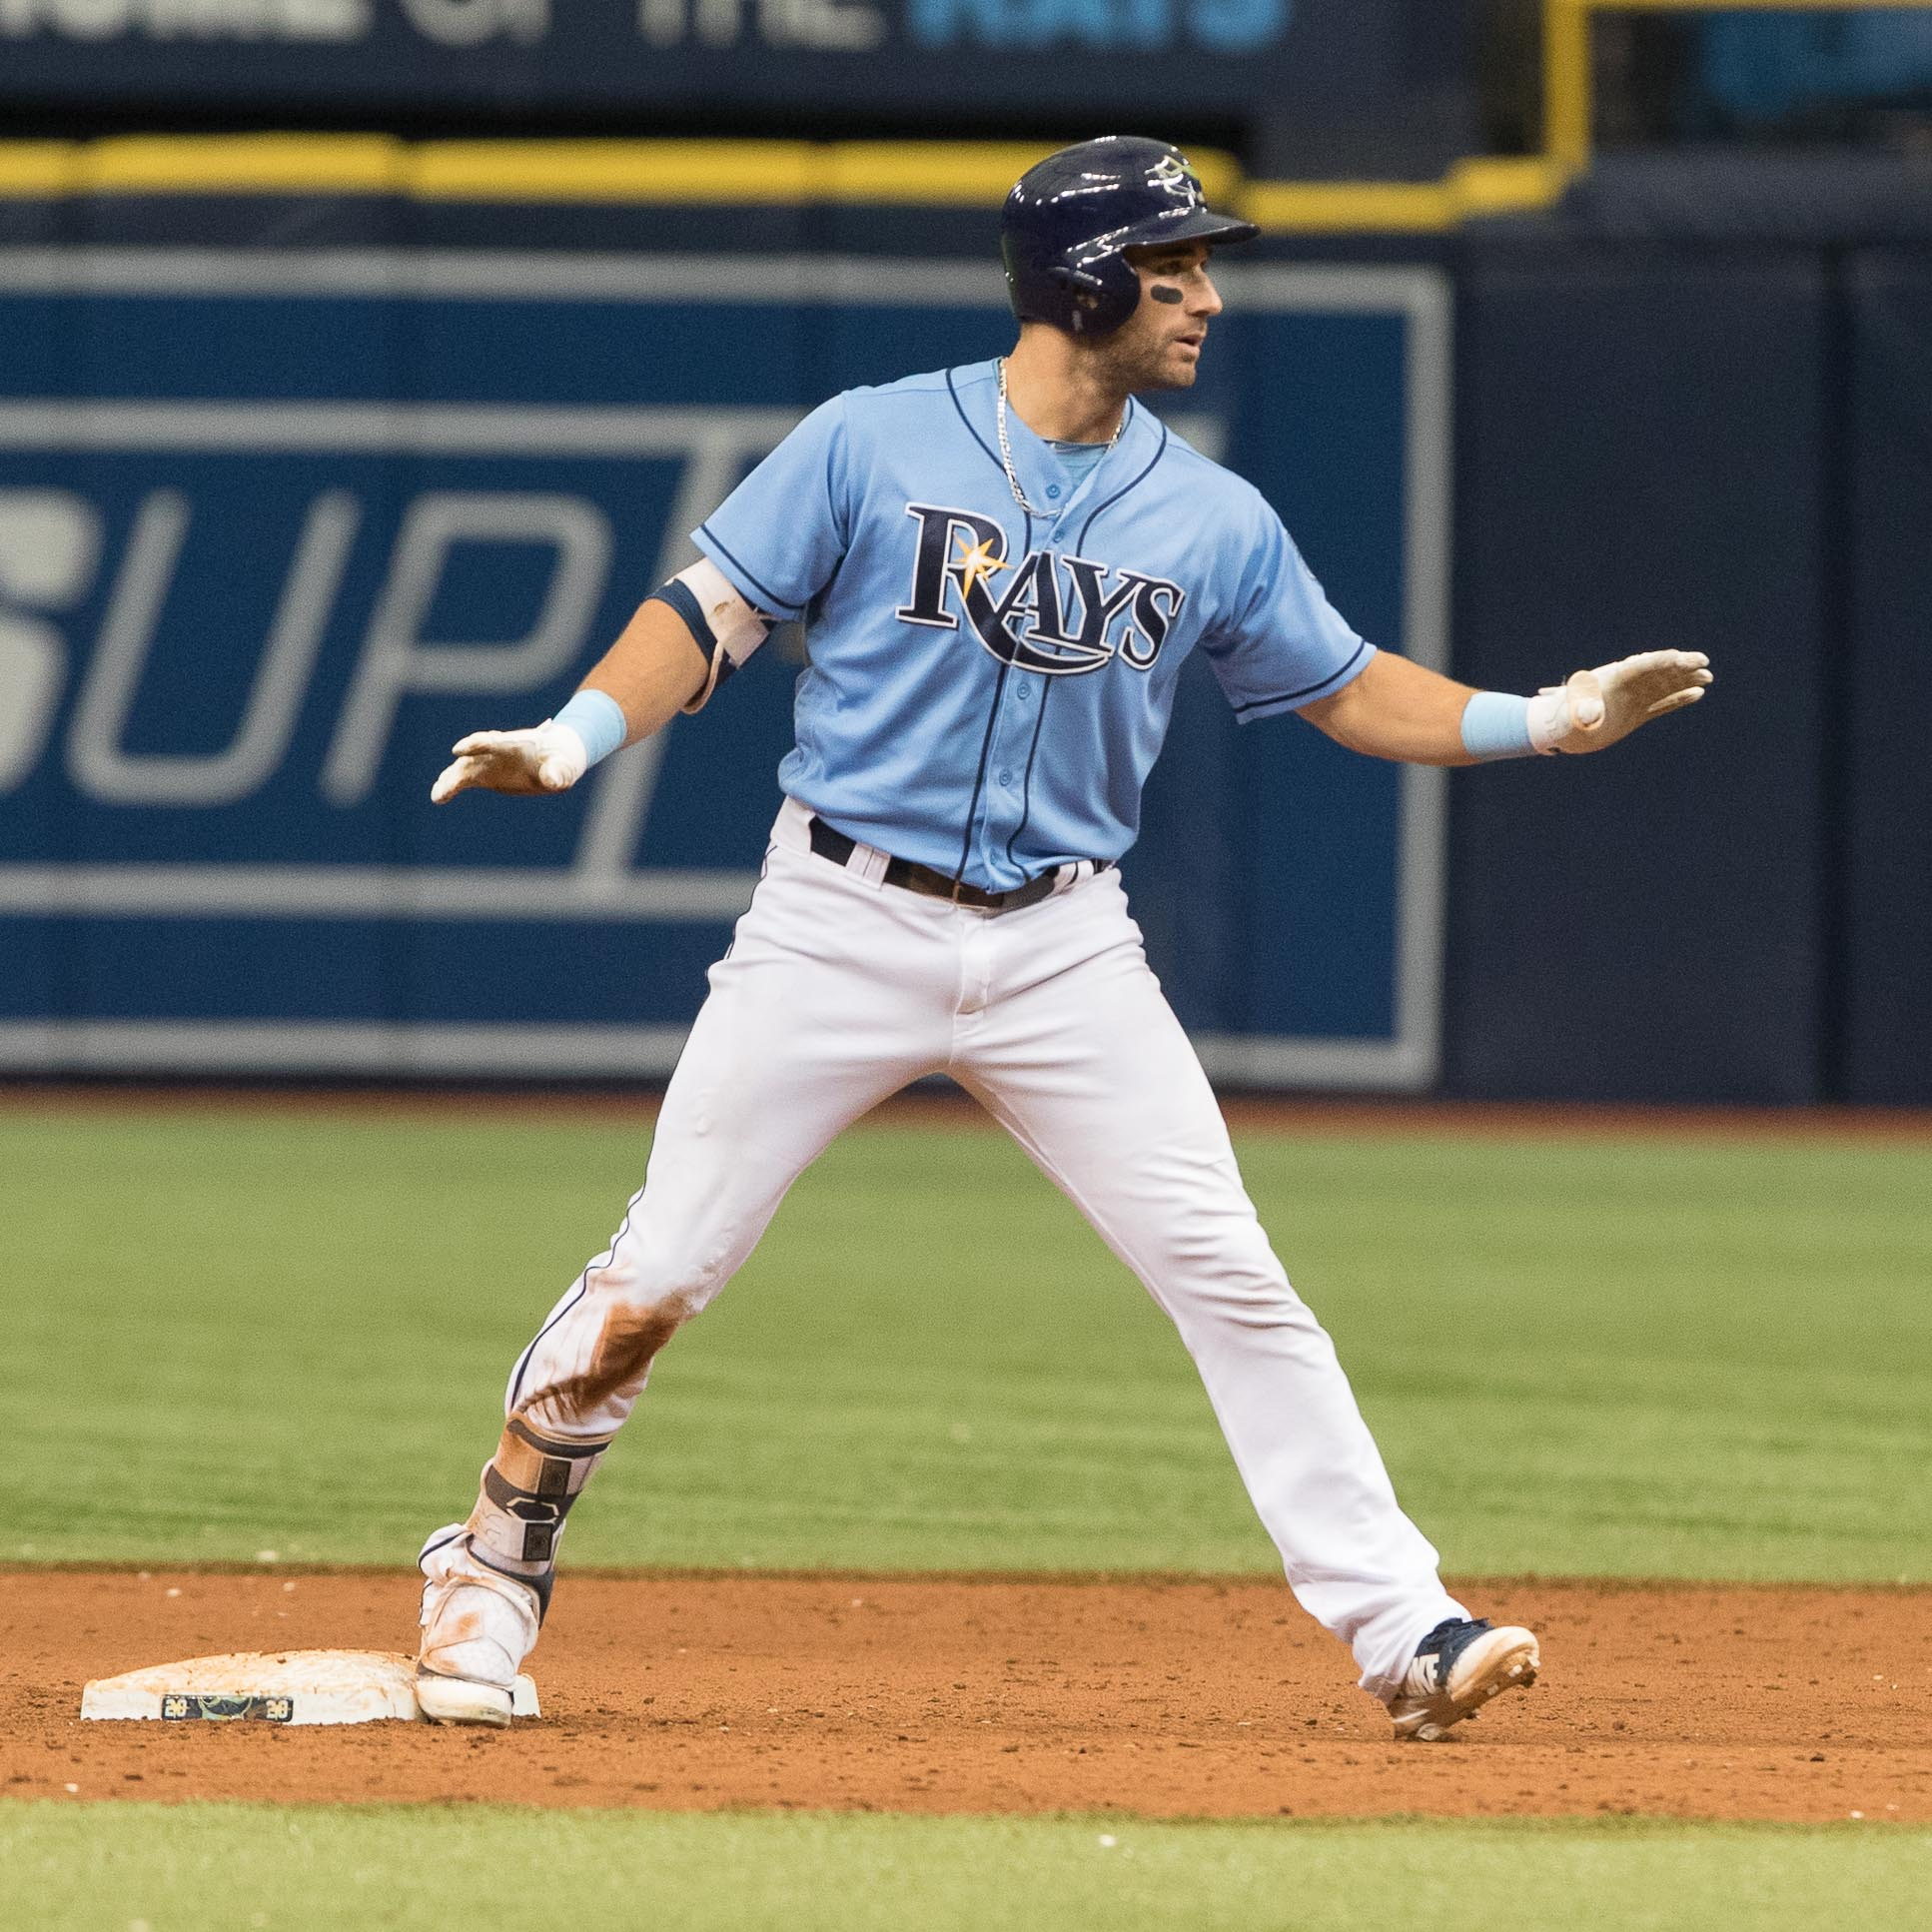 Keiermaier's double gave the Rays a chance./STEVEN MUNCIE